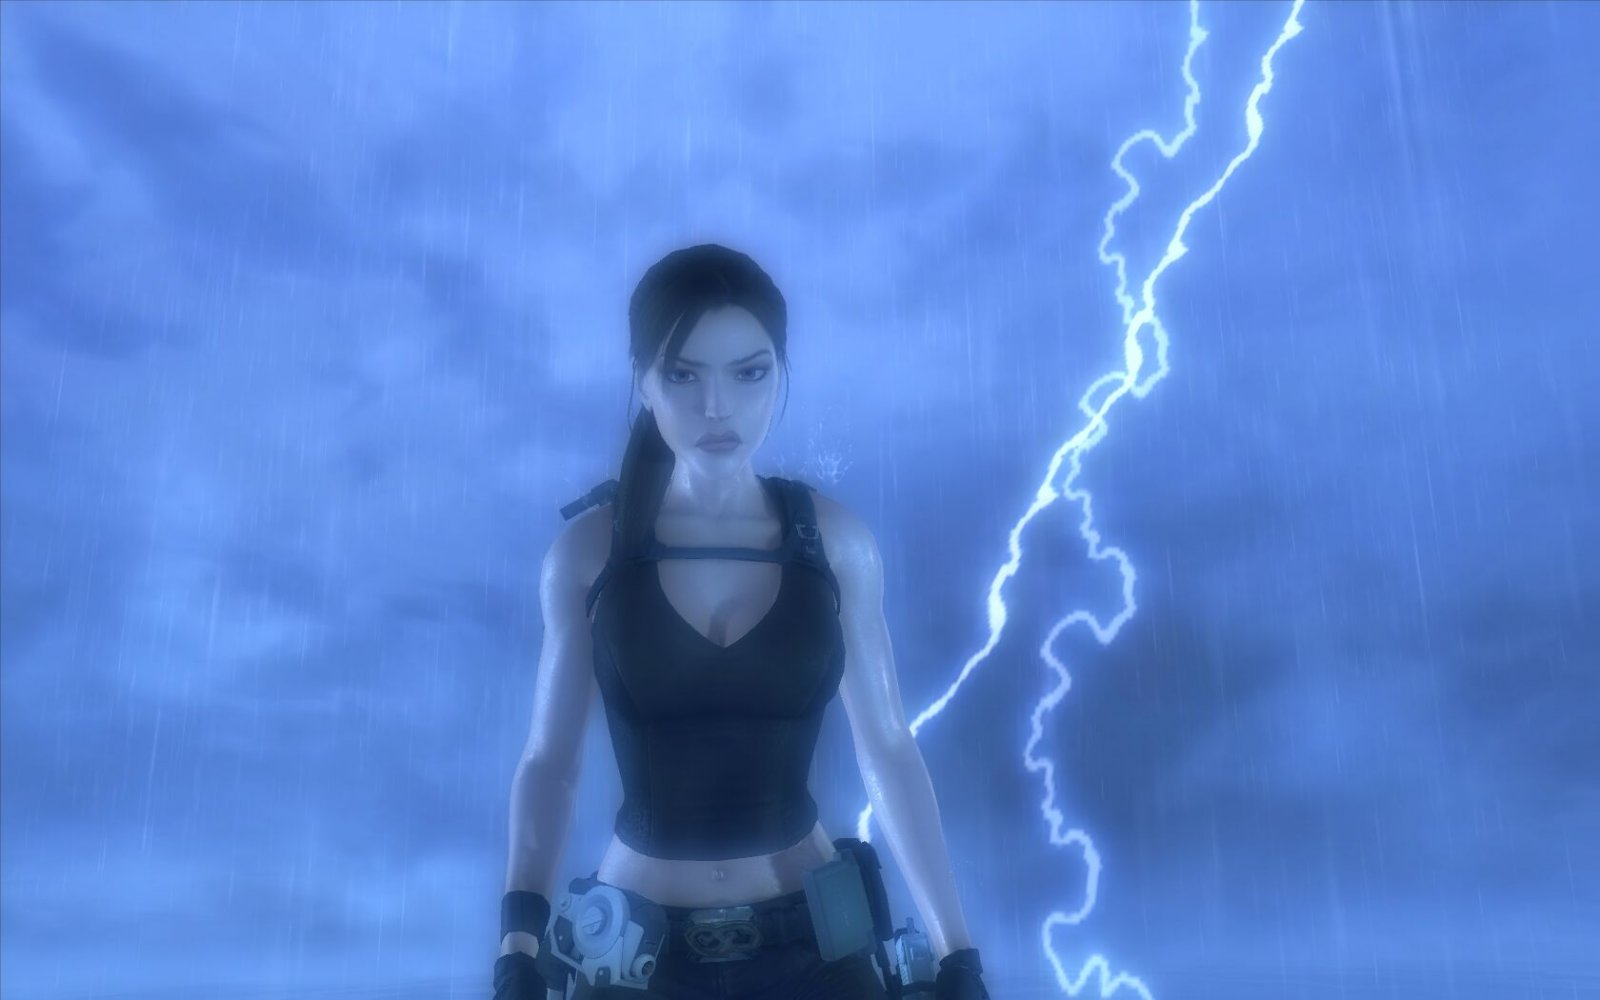 Tomb raider lara croft nackt gif porn galleries